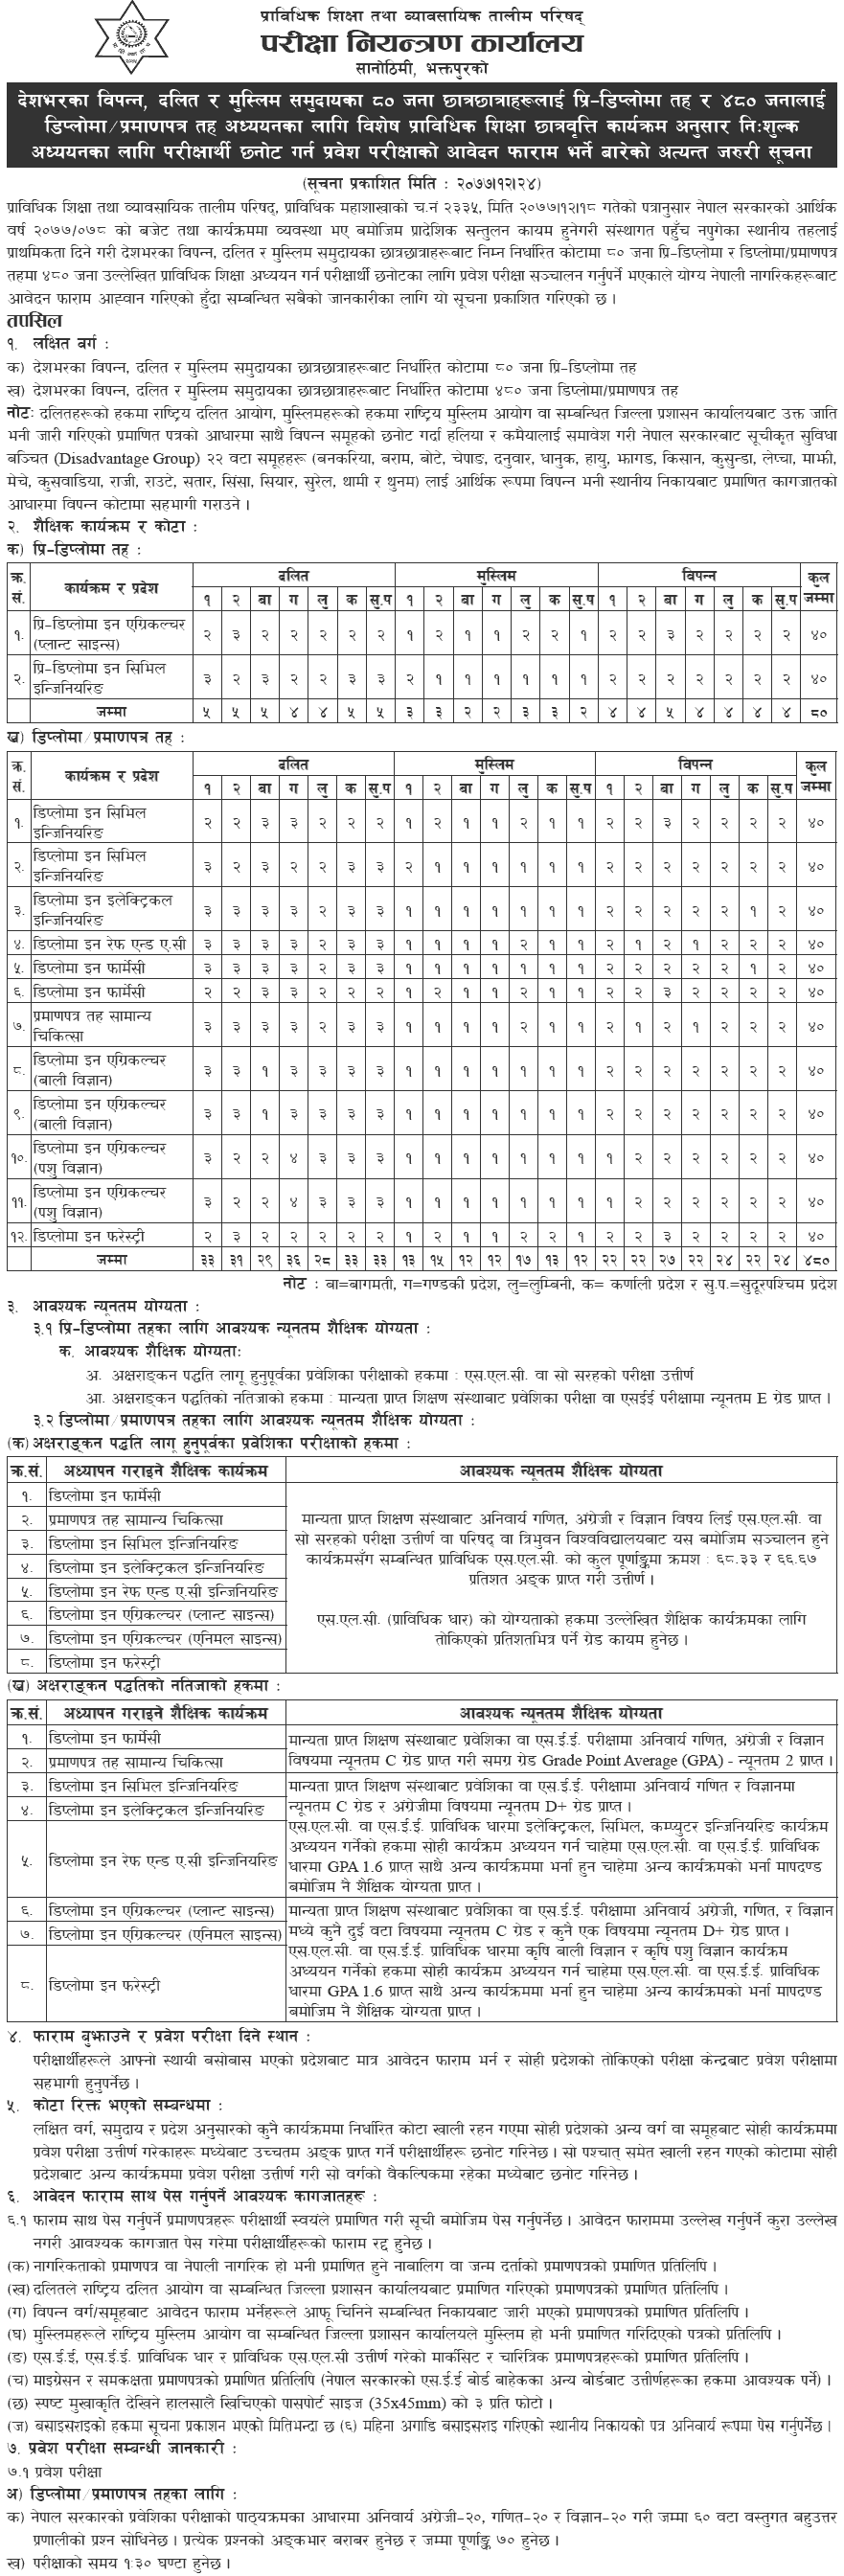 Pre-Diploma and Diploma Level Special Scholarship Notice from CTEVT